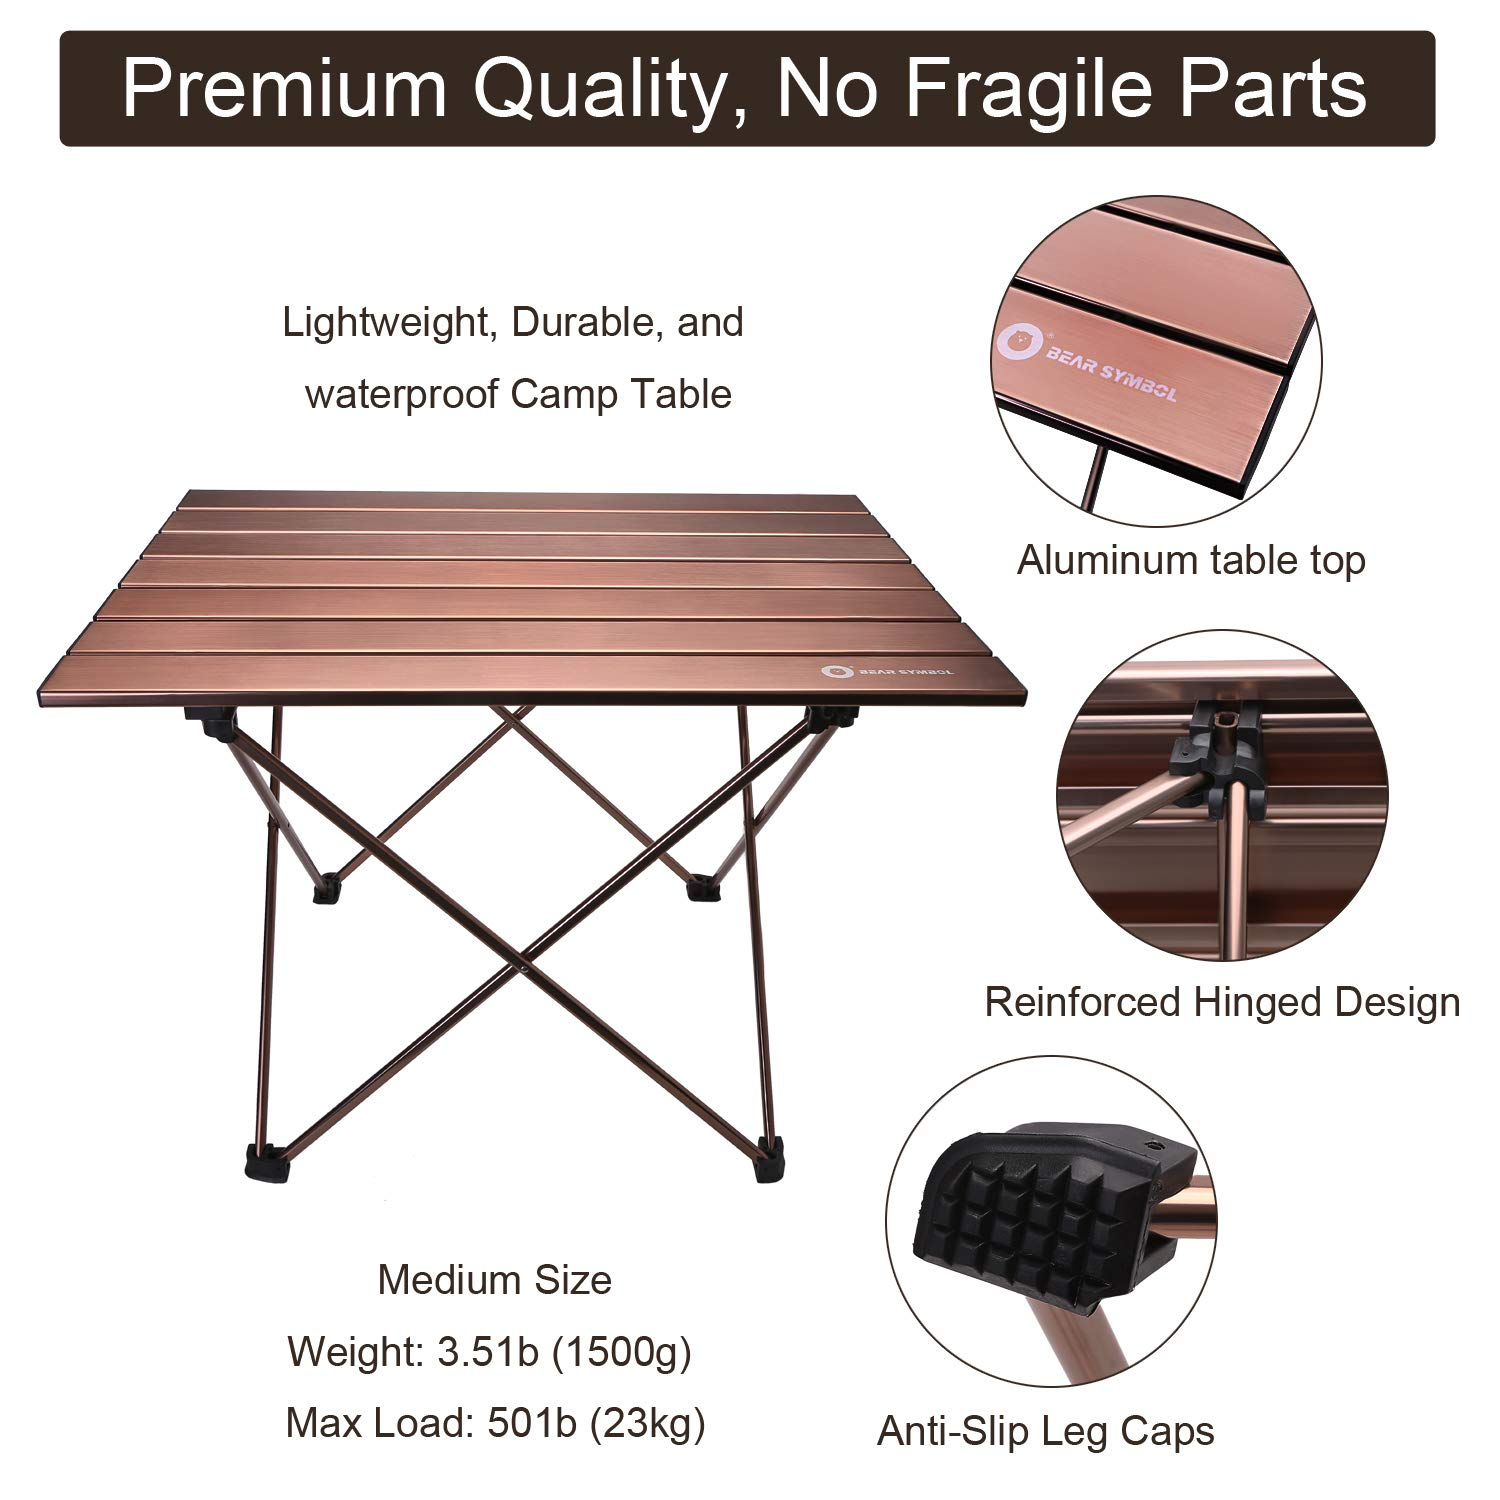 Stupendous Erago Portable Folding Premium Camping Table Lightweightbackpack Appropriate For Dining Cooking Hiking Camping Picnic Beach Outdoor Frankydiablos Diy Chair Ideas Frankydiabloscom